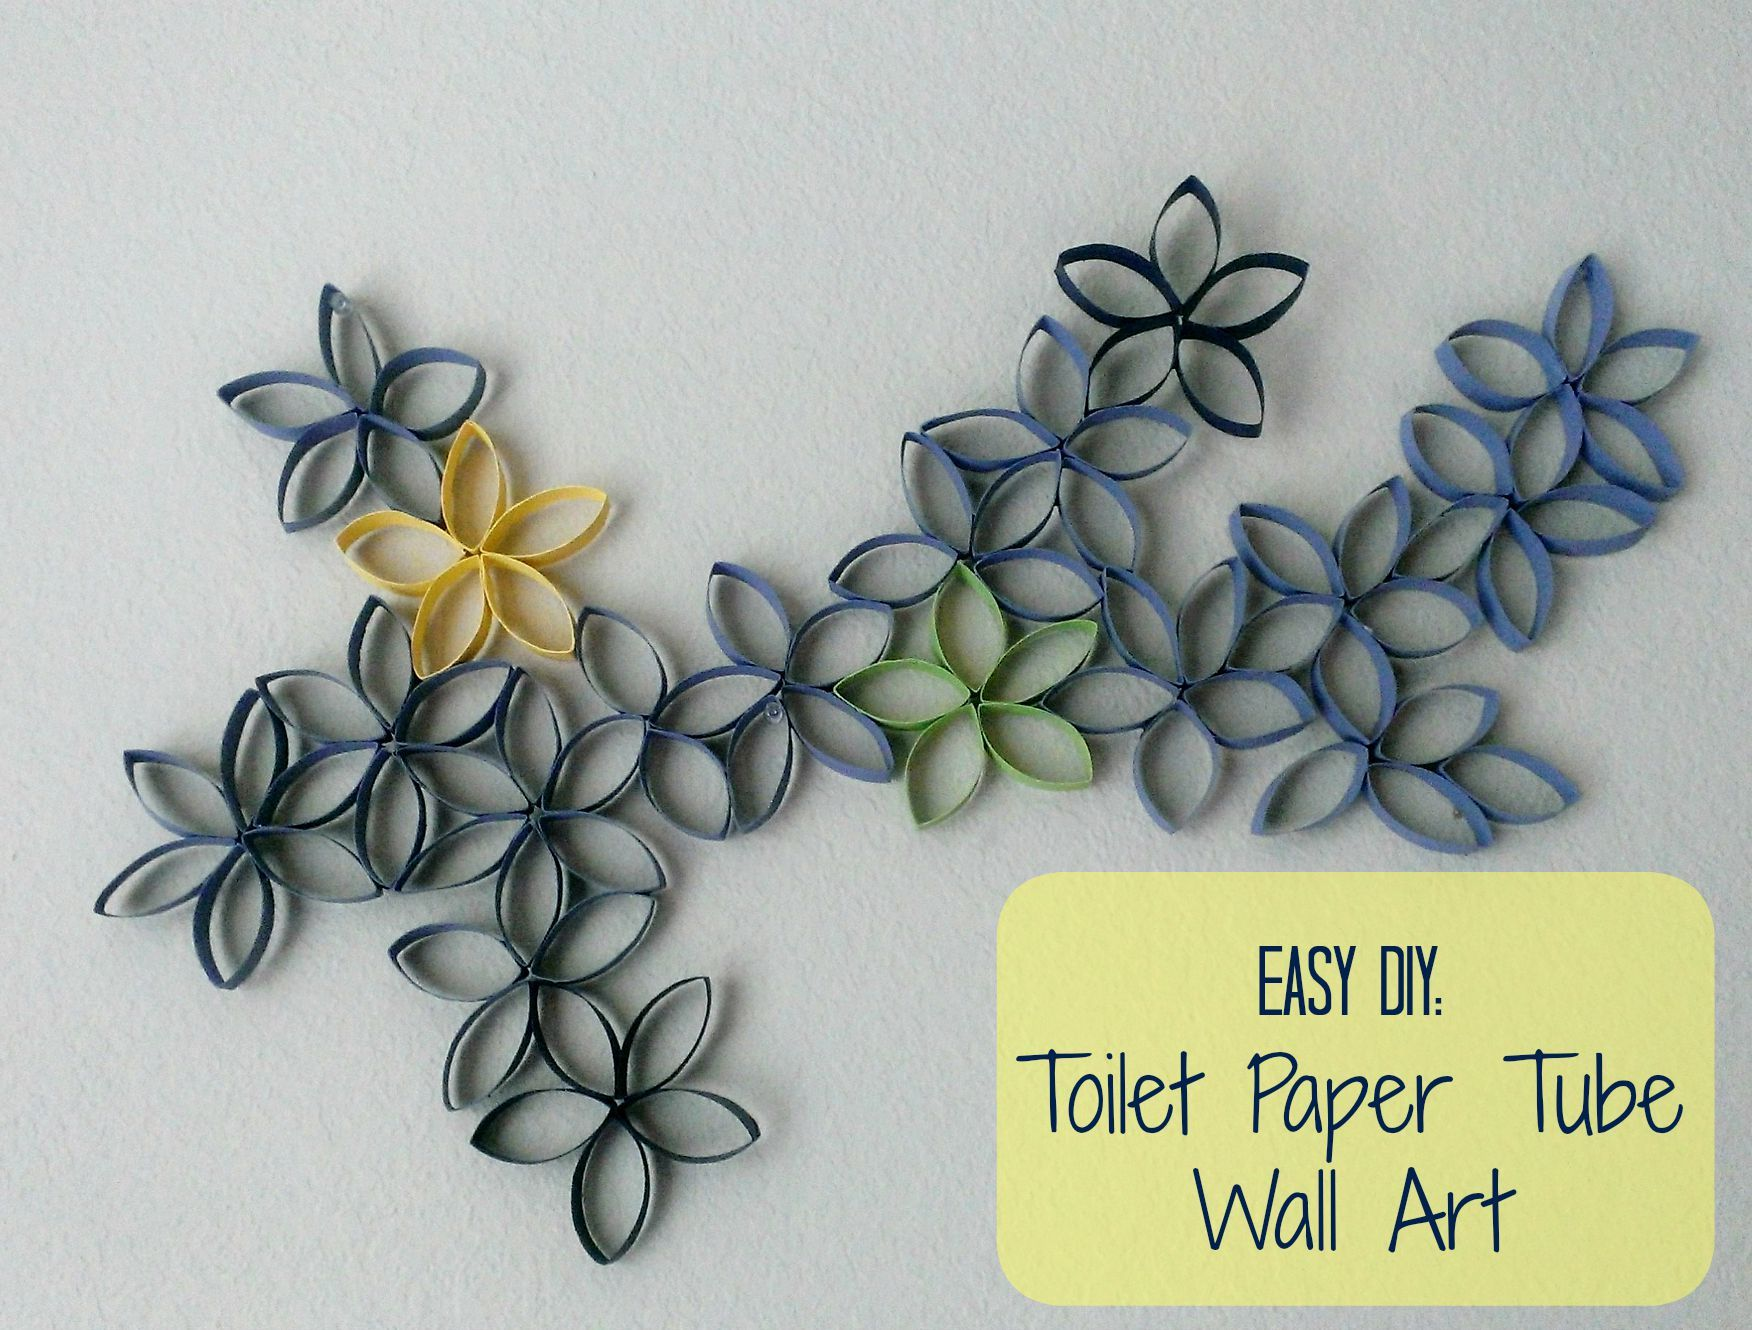 Toilet Paper Roll Wall Decoration - Inexpensive Wall Art, Toilet